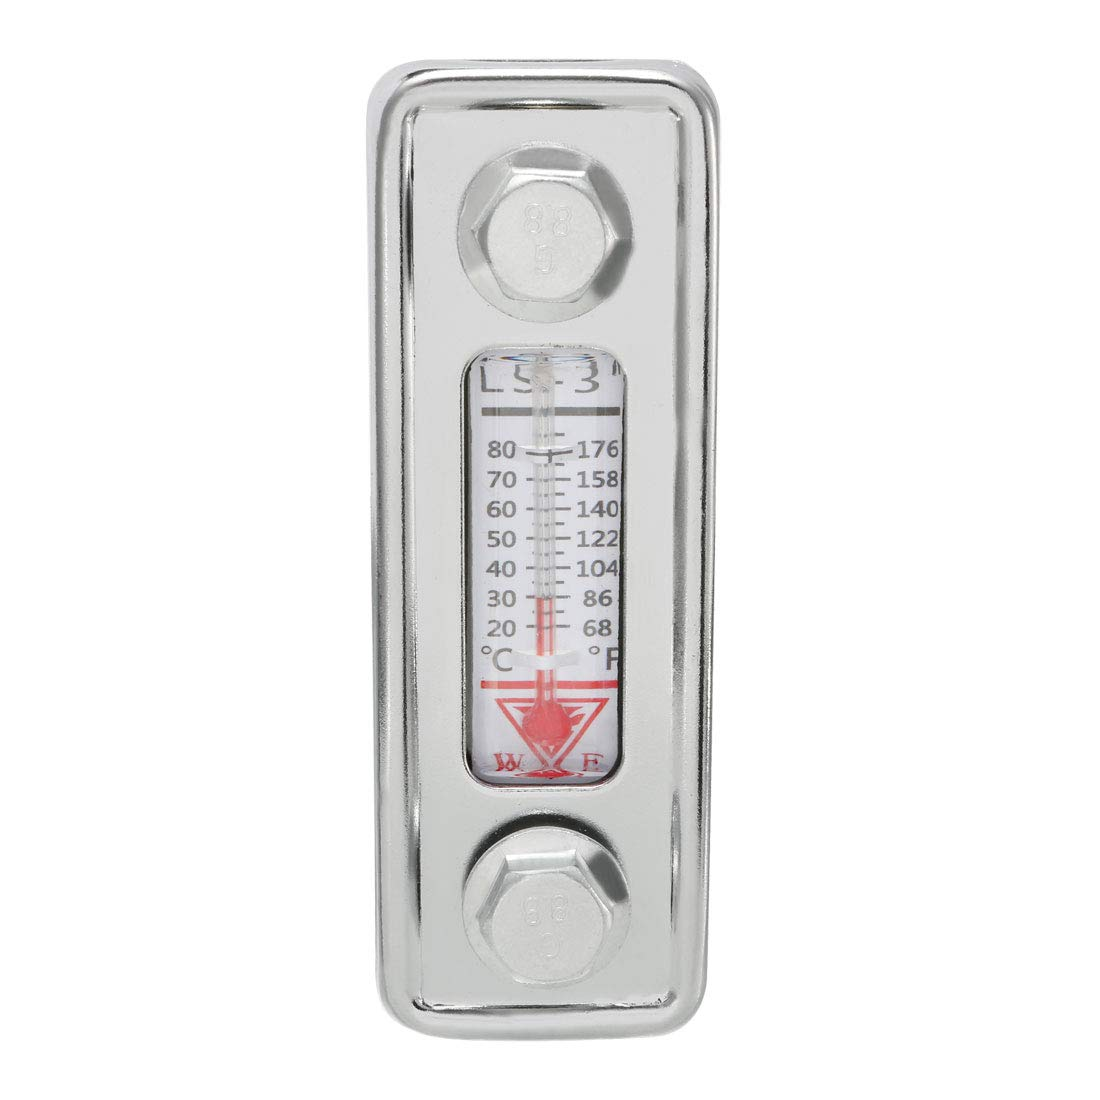 uxcell Water Liquid Temperature Gauge Hydraulic Oil Level Gauge with Thermometer LS-3 by uxcell